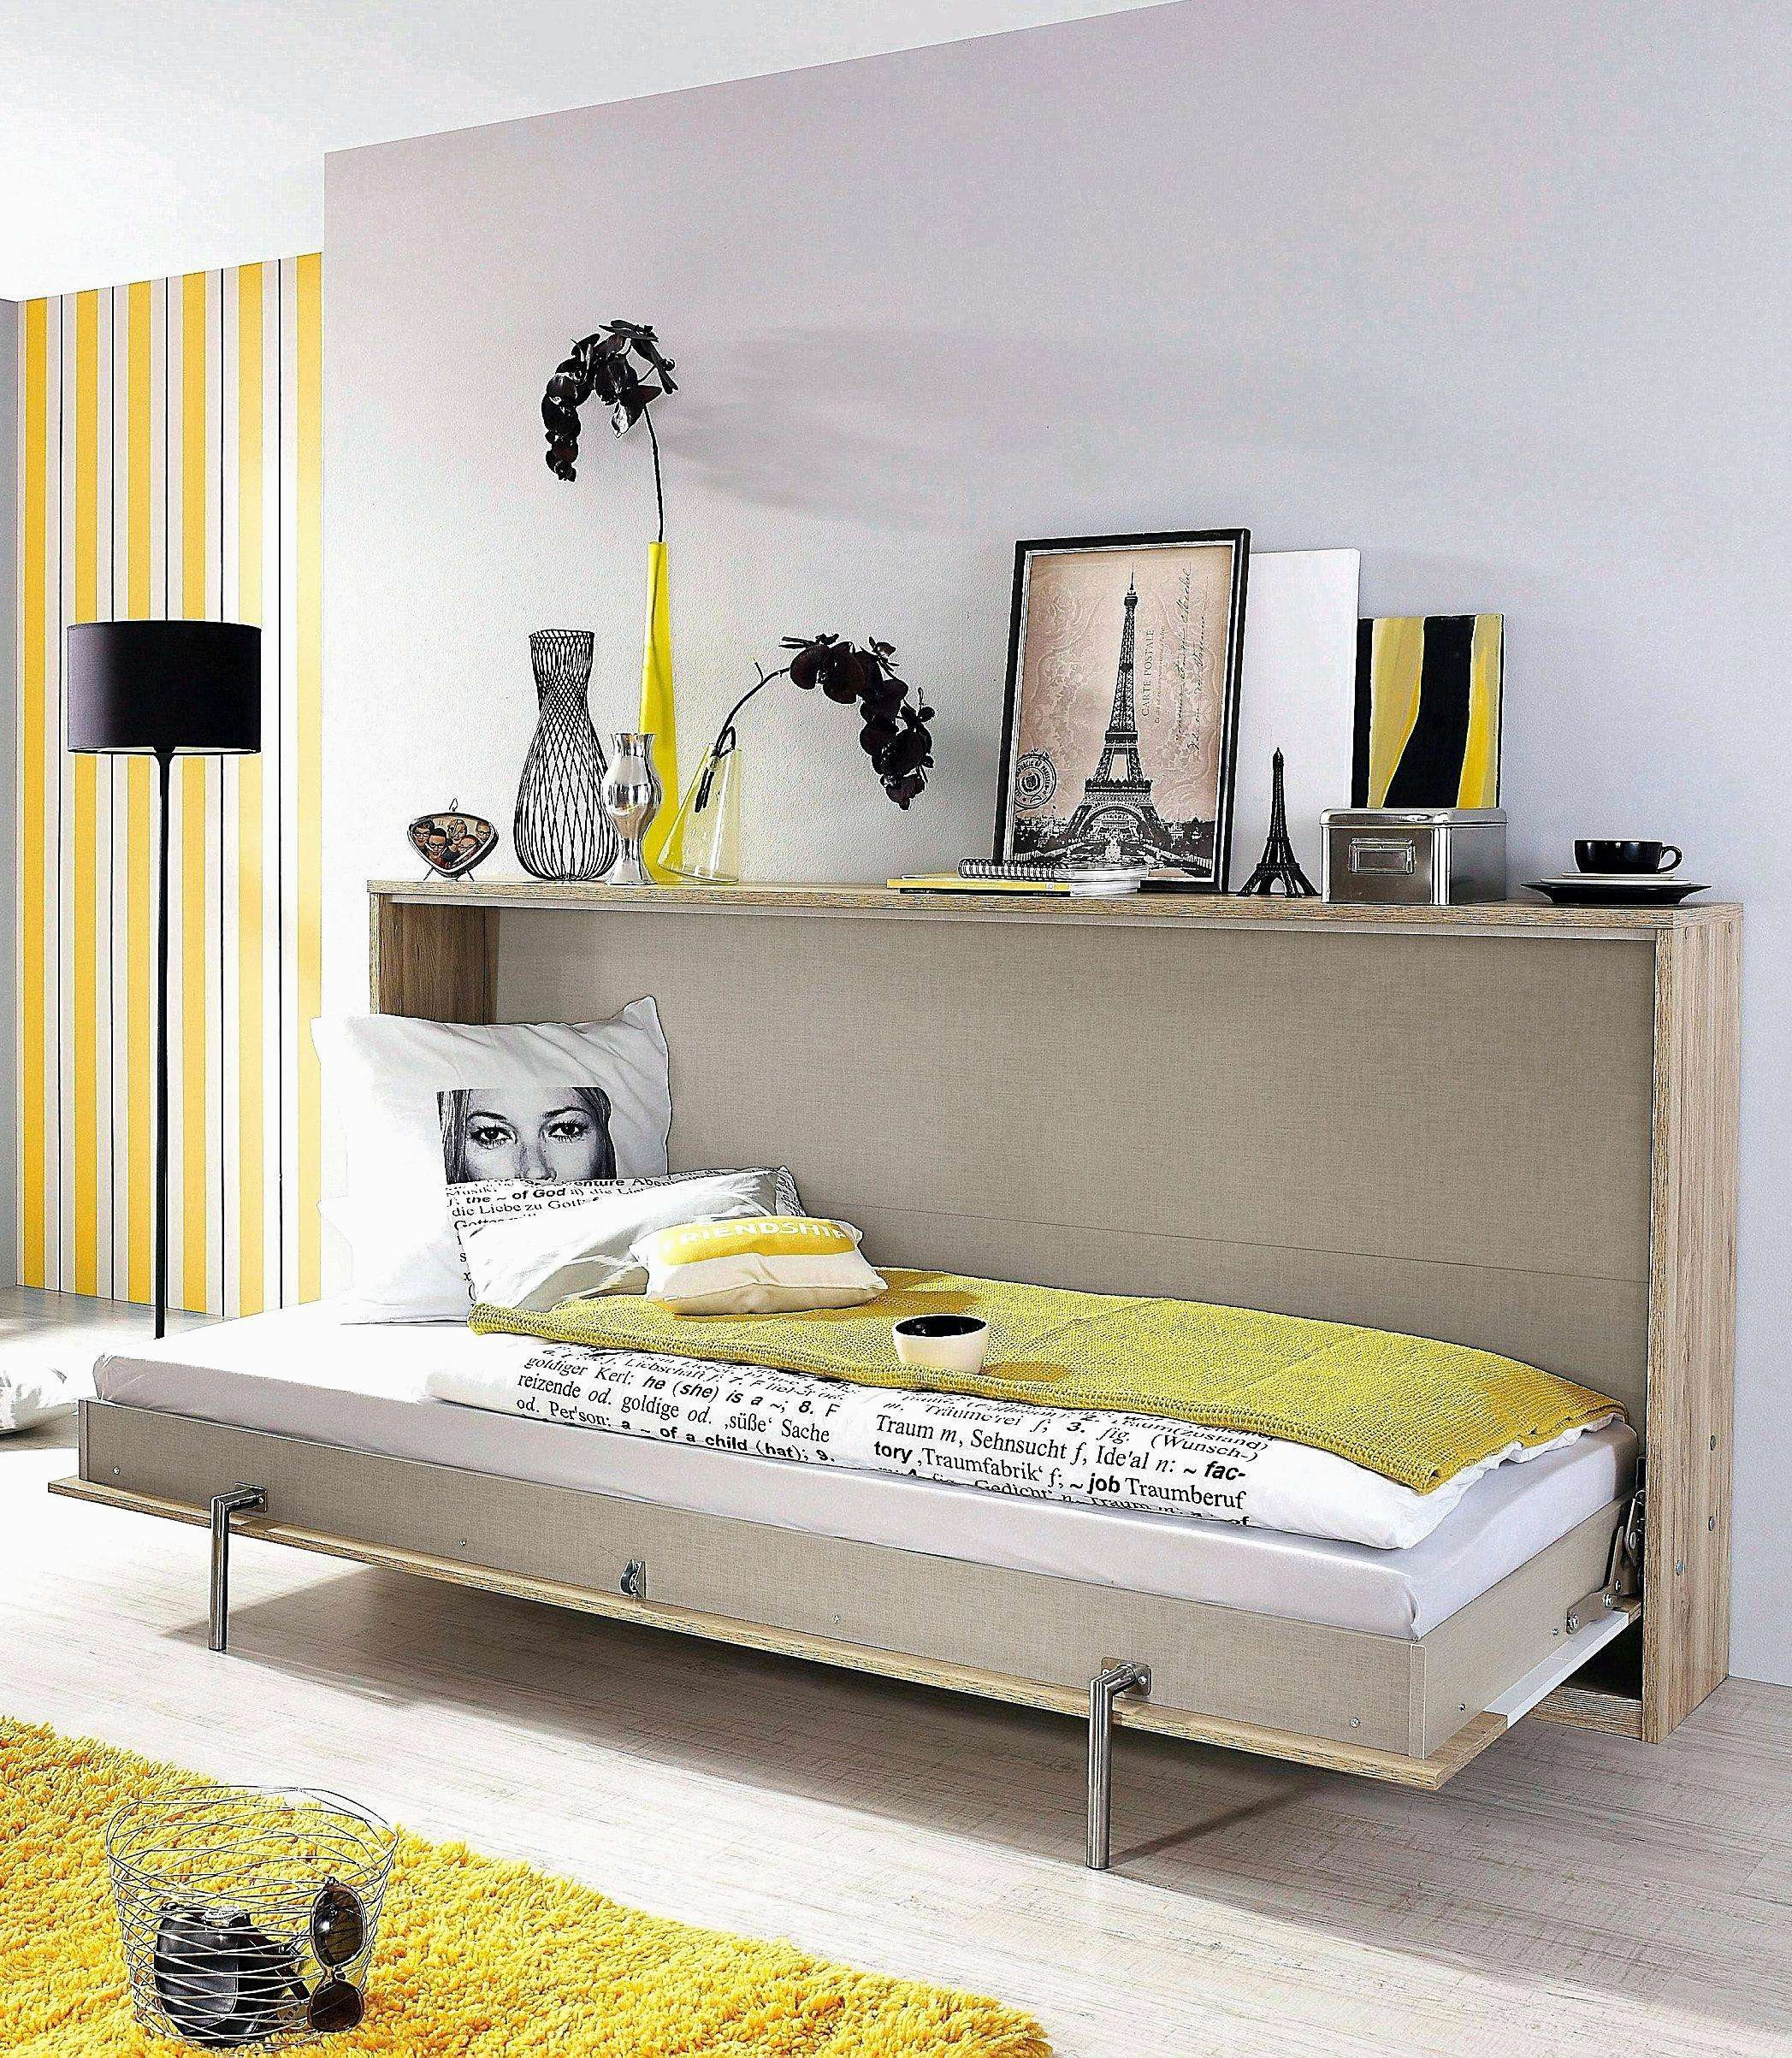 Lit Rond Ikea Inspiré Hemnes Ikea Lit Hemnes Daybed Google Search Chambre Louna Pinterest